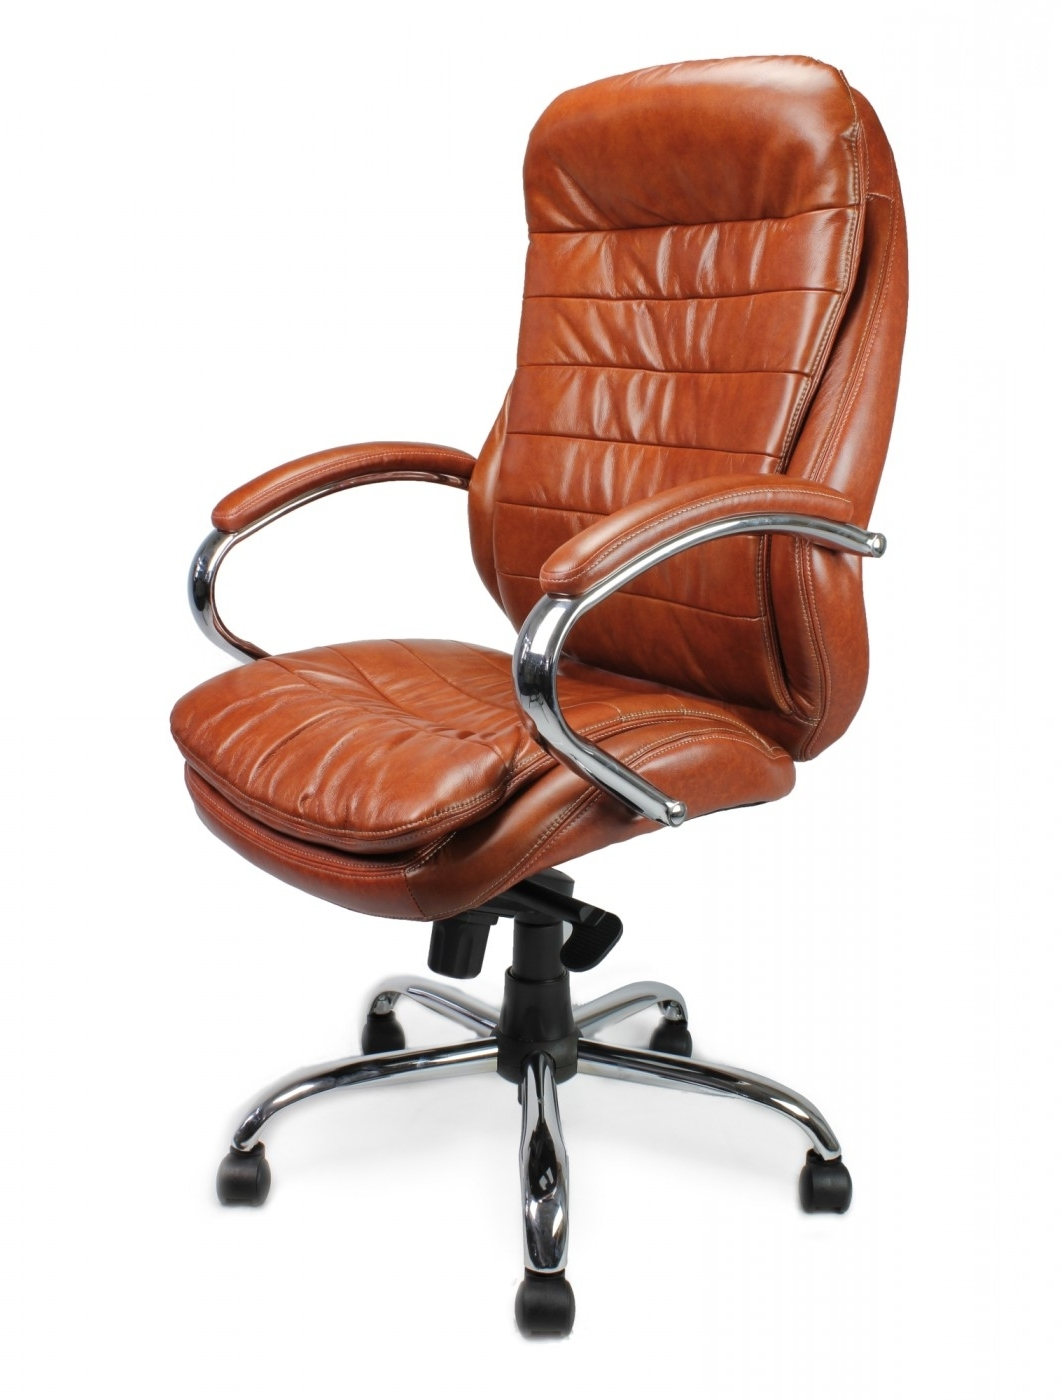 Chair : Transitional Leather Executive Office Chair Leather Inside Latest Genuine Leather Executive Office Chairs (View 13 of 20)